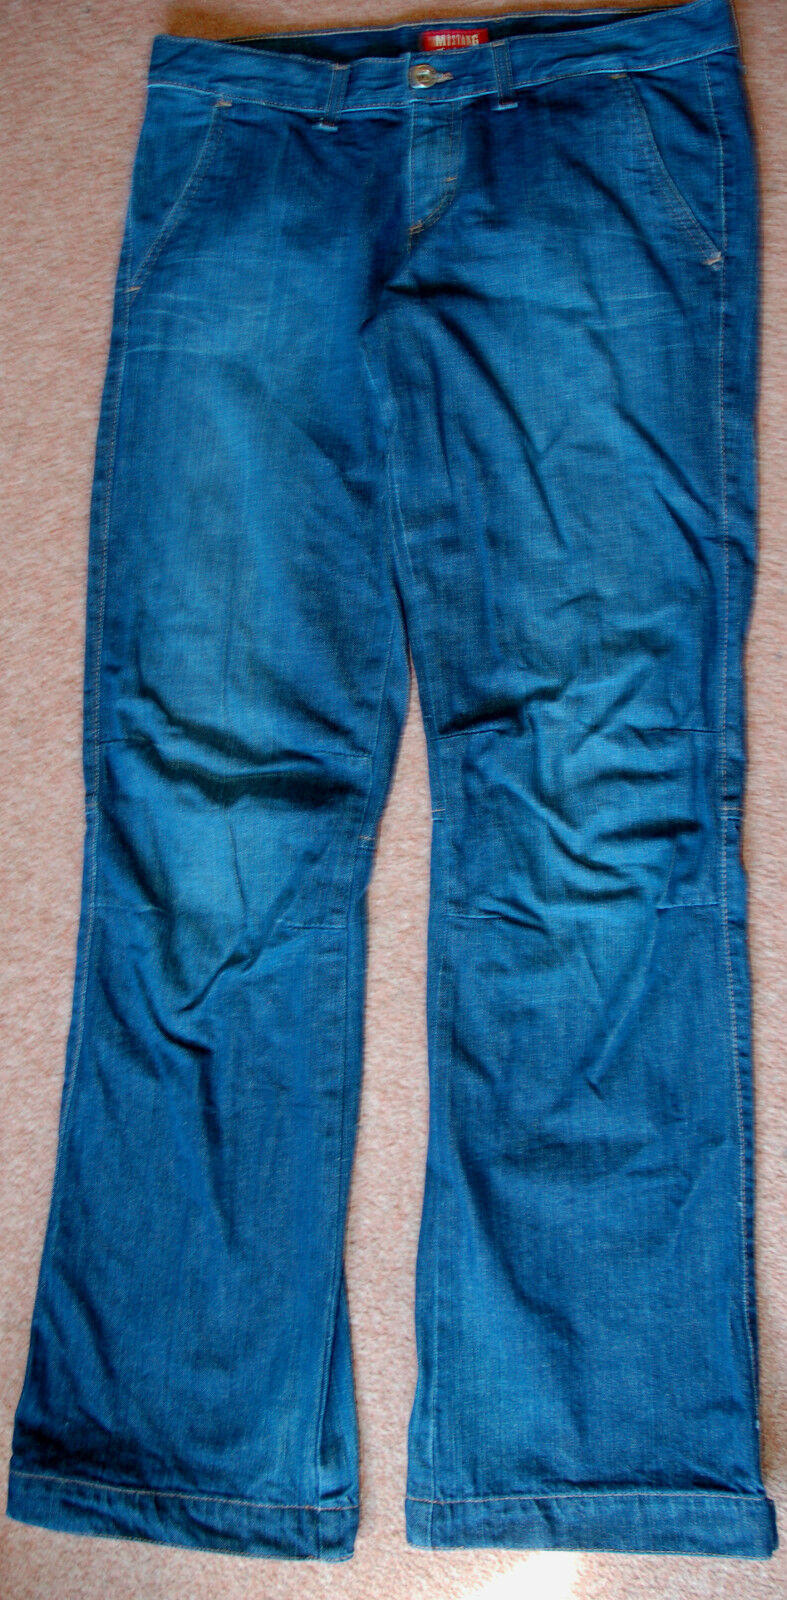 New Mustang 29x34 Long Tall Indigo Cotton Jeans Trousers Stiefel cut Tab Adj Ankle